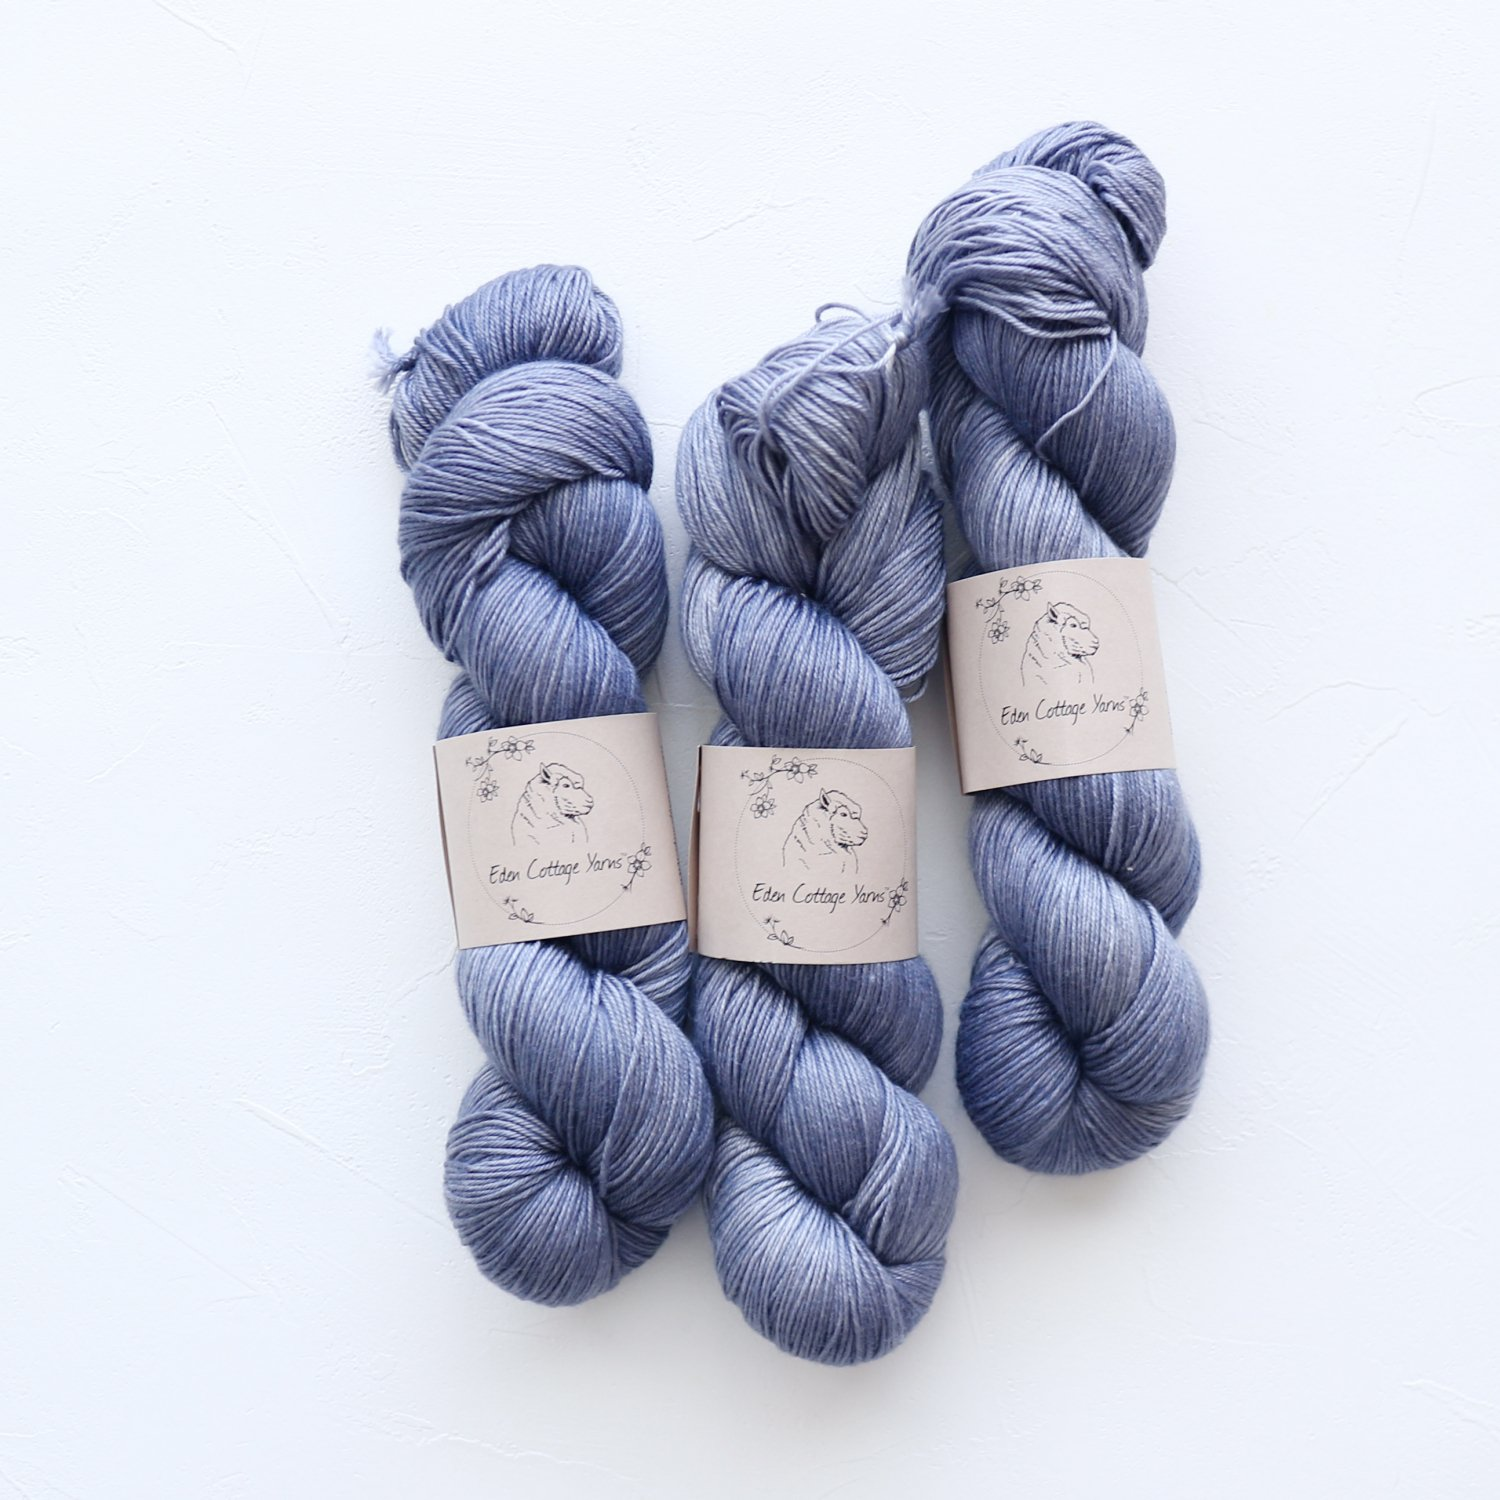 【Eden Cottage Yarns】<br>Titus 4ply<br>Tarn